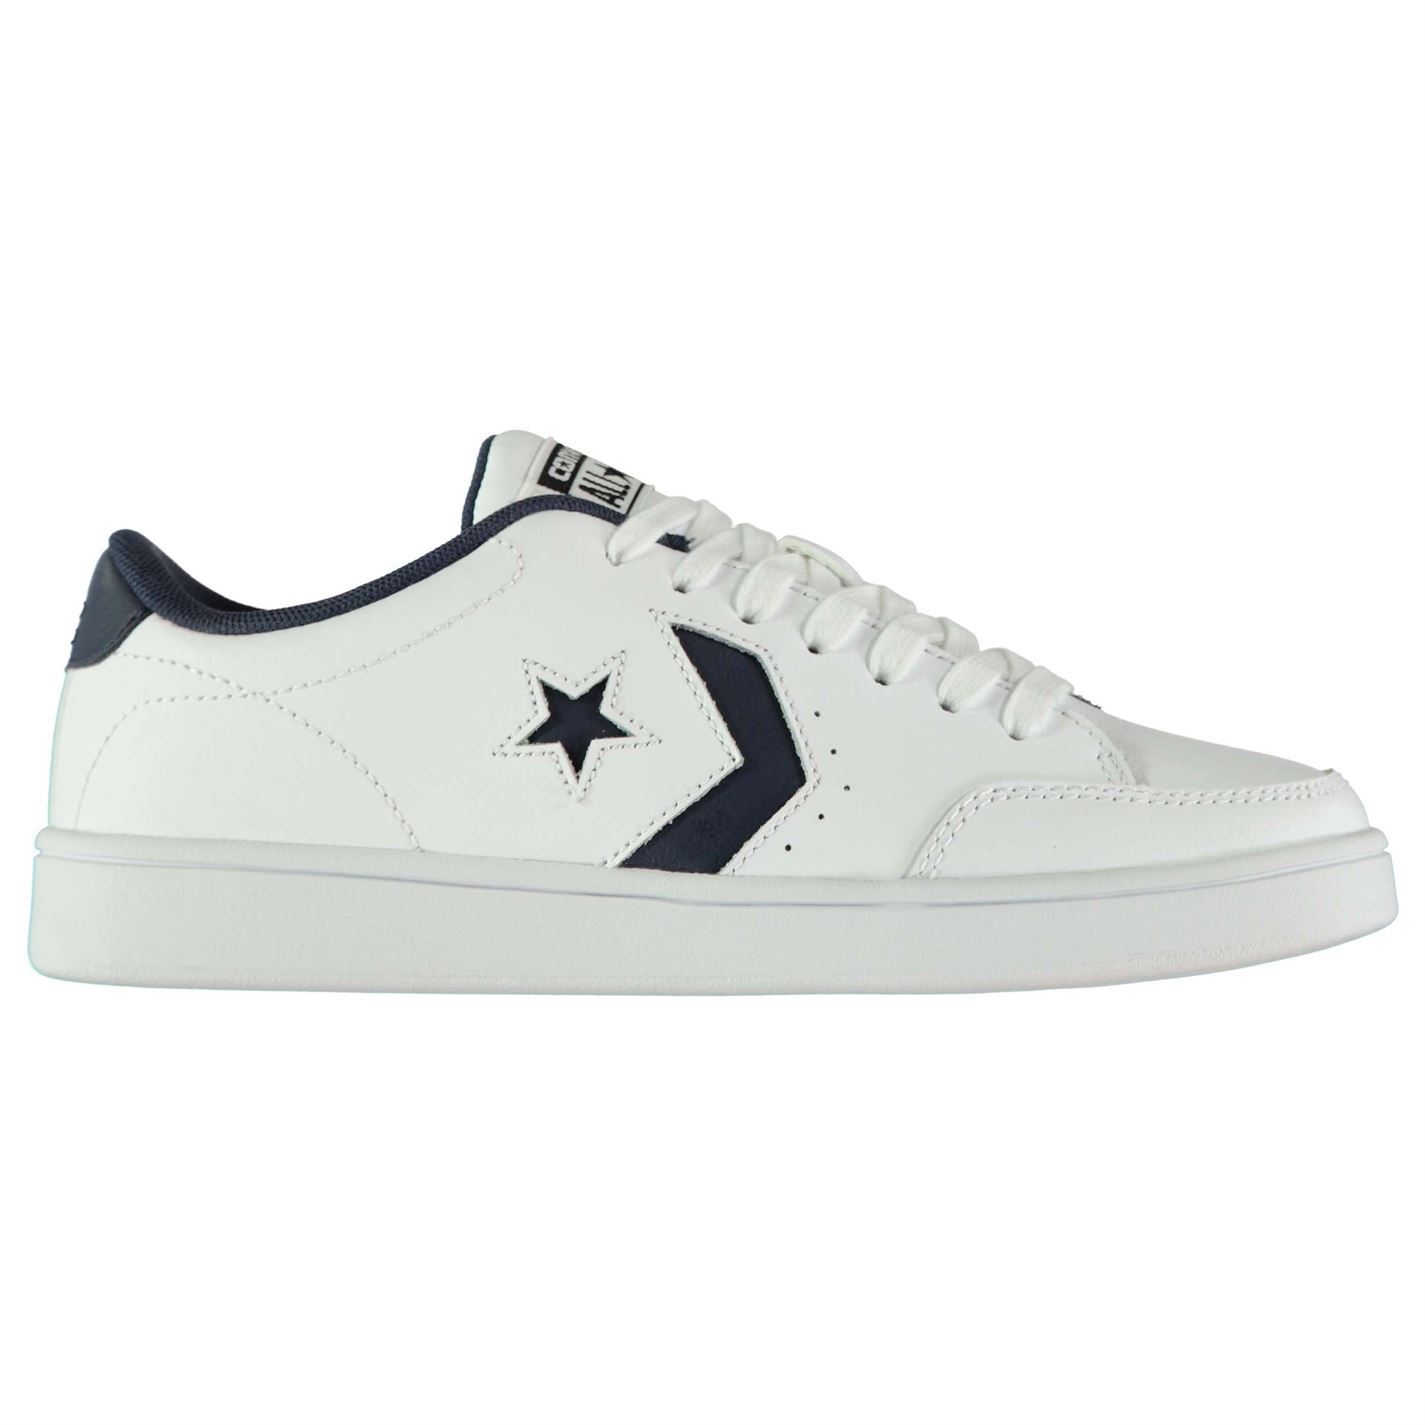 converse star court trainers white off 68% - www.gclxpress.com